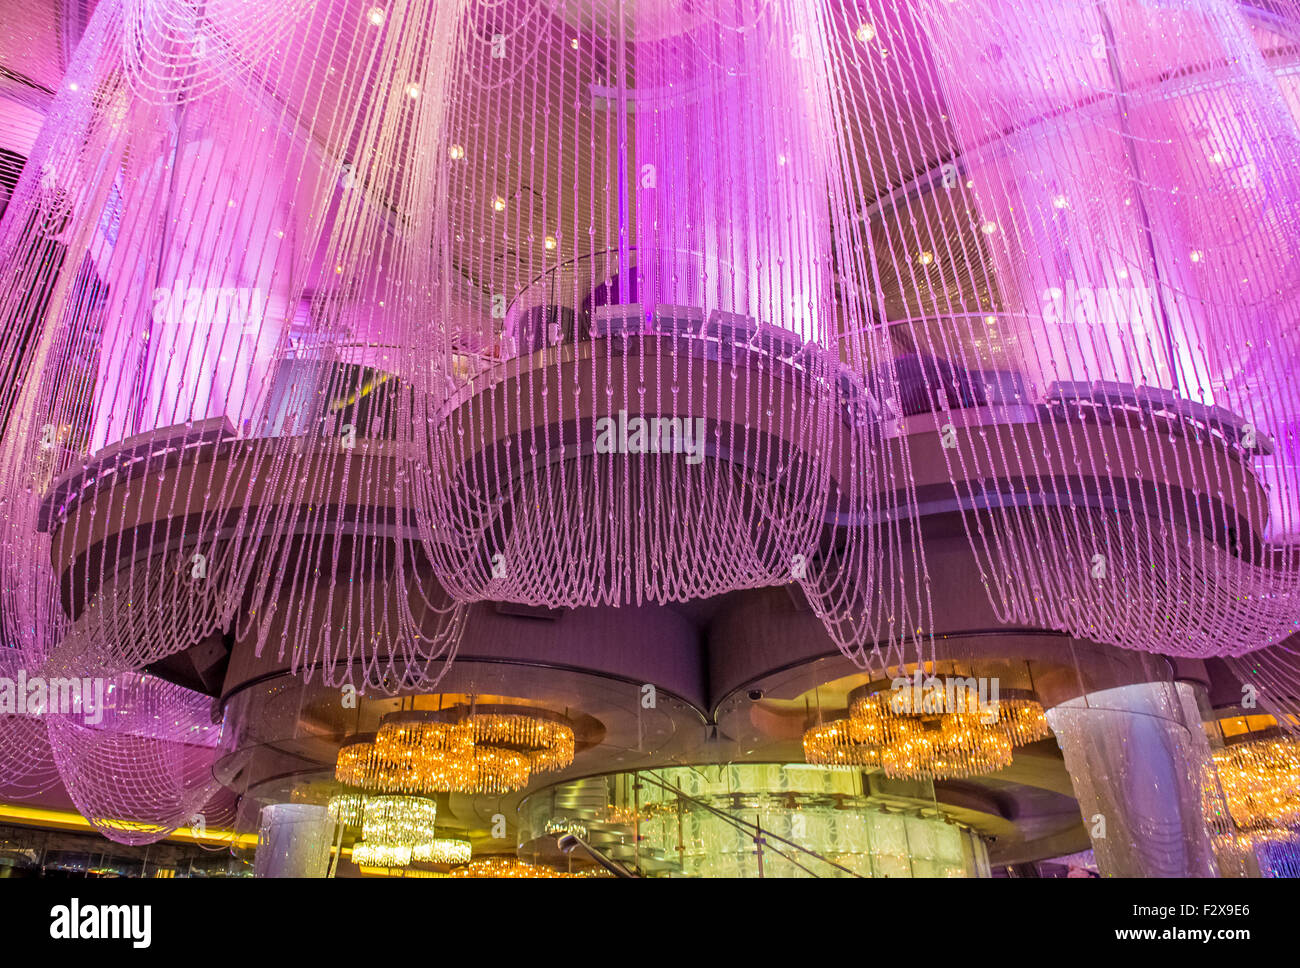 The chandelier bar at the cosmopolitan hotel casino in las vegas the chandelier bar at the cosmopolitan hotel casino in las vegas arubaitofo Image collections